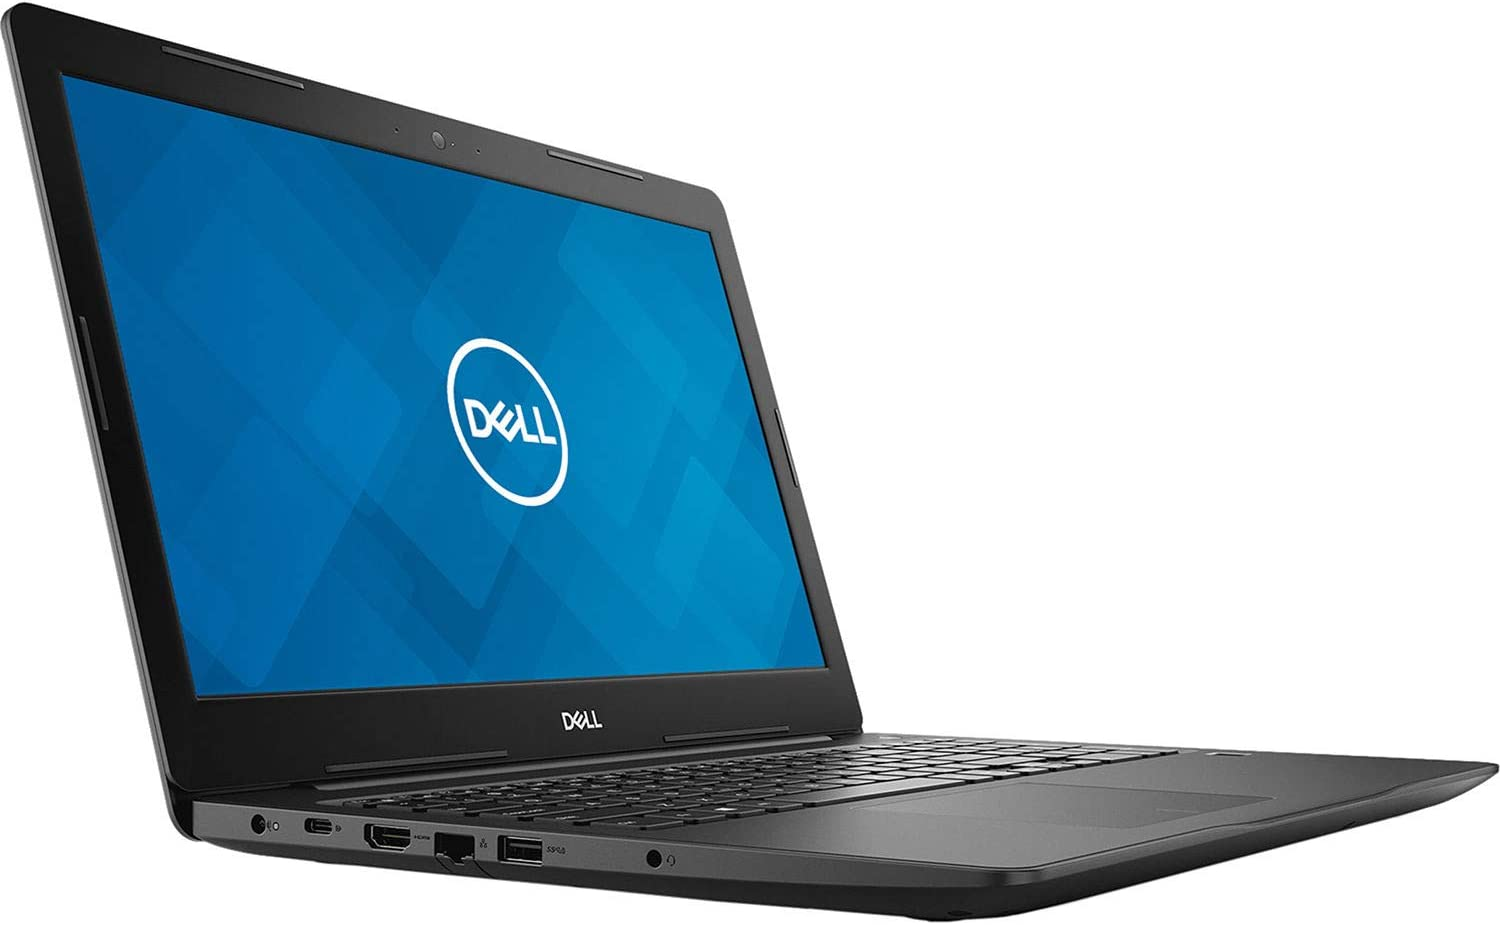 "Dell Latitude 13 - 3390 2-in-1 Business Laptop (13.3"" FHD Touchscreen, Intel Core i5-8350U, 16GB DDR4, 256GB SSD, Backlit Keyboard, IR Camera) Windows 10 Pro"